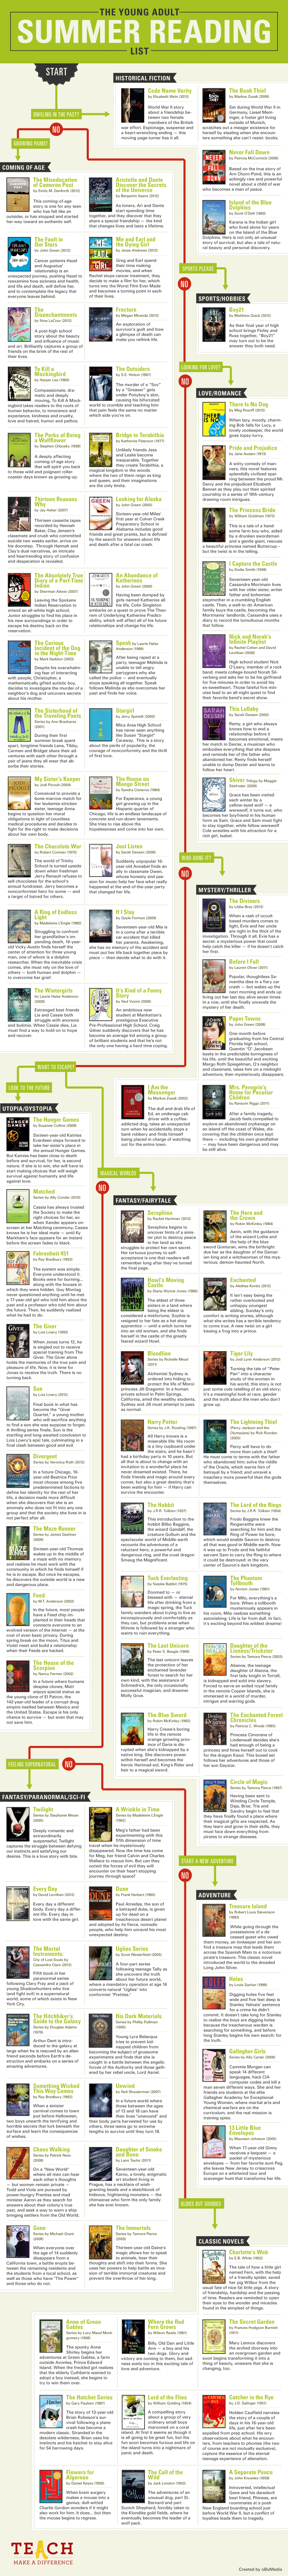 Summer-Reading-Flowchart-Young-Adults